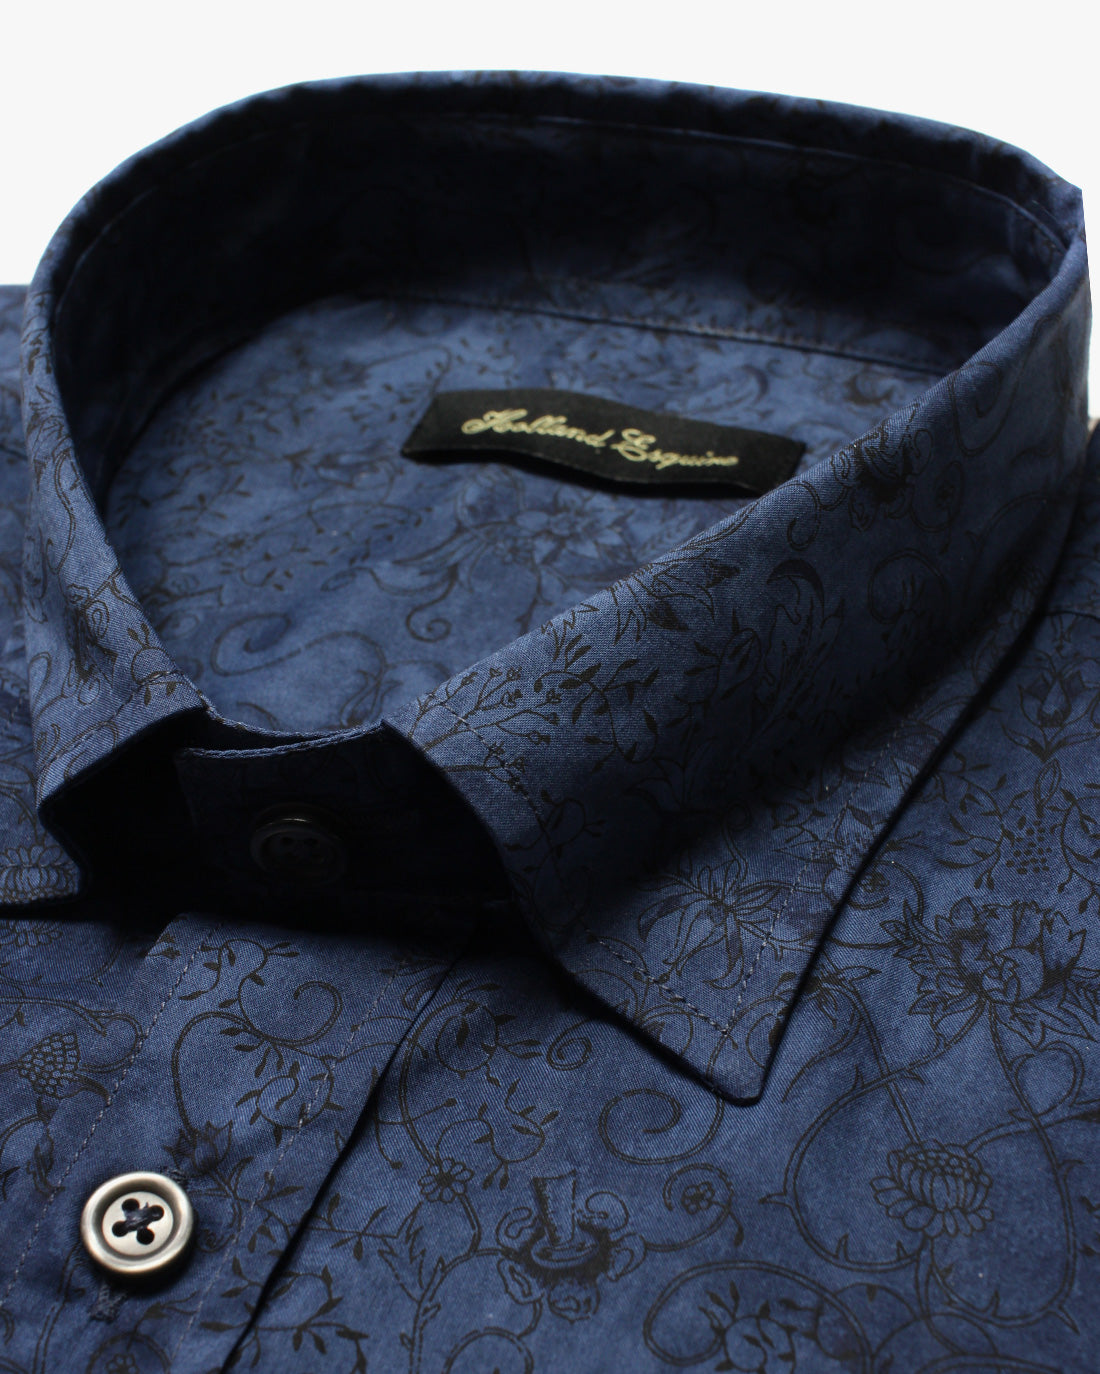 Navy Liberty Vines Button Under Shirt - Holland Esquire